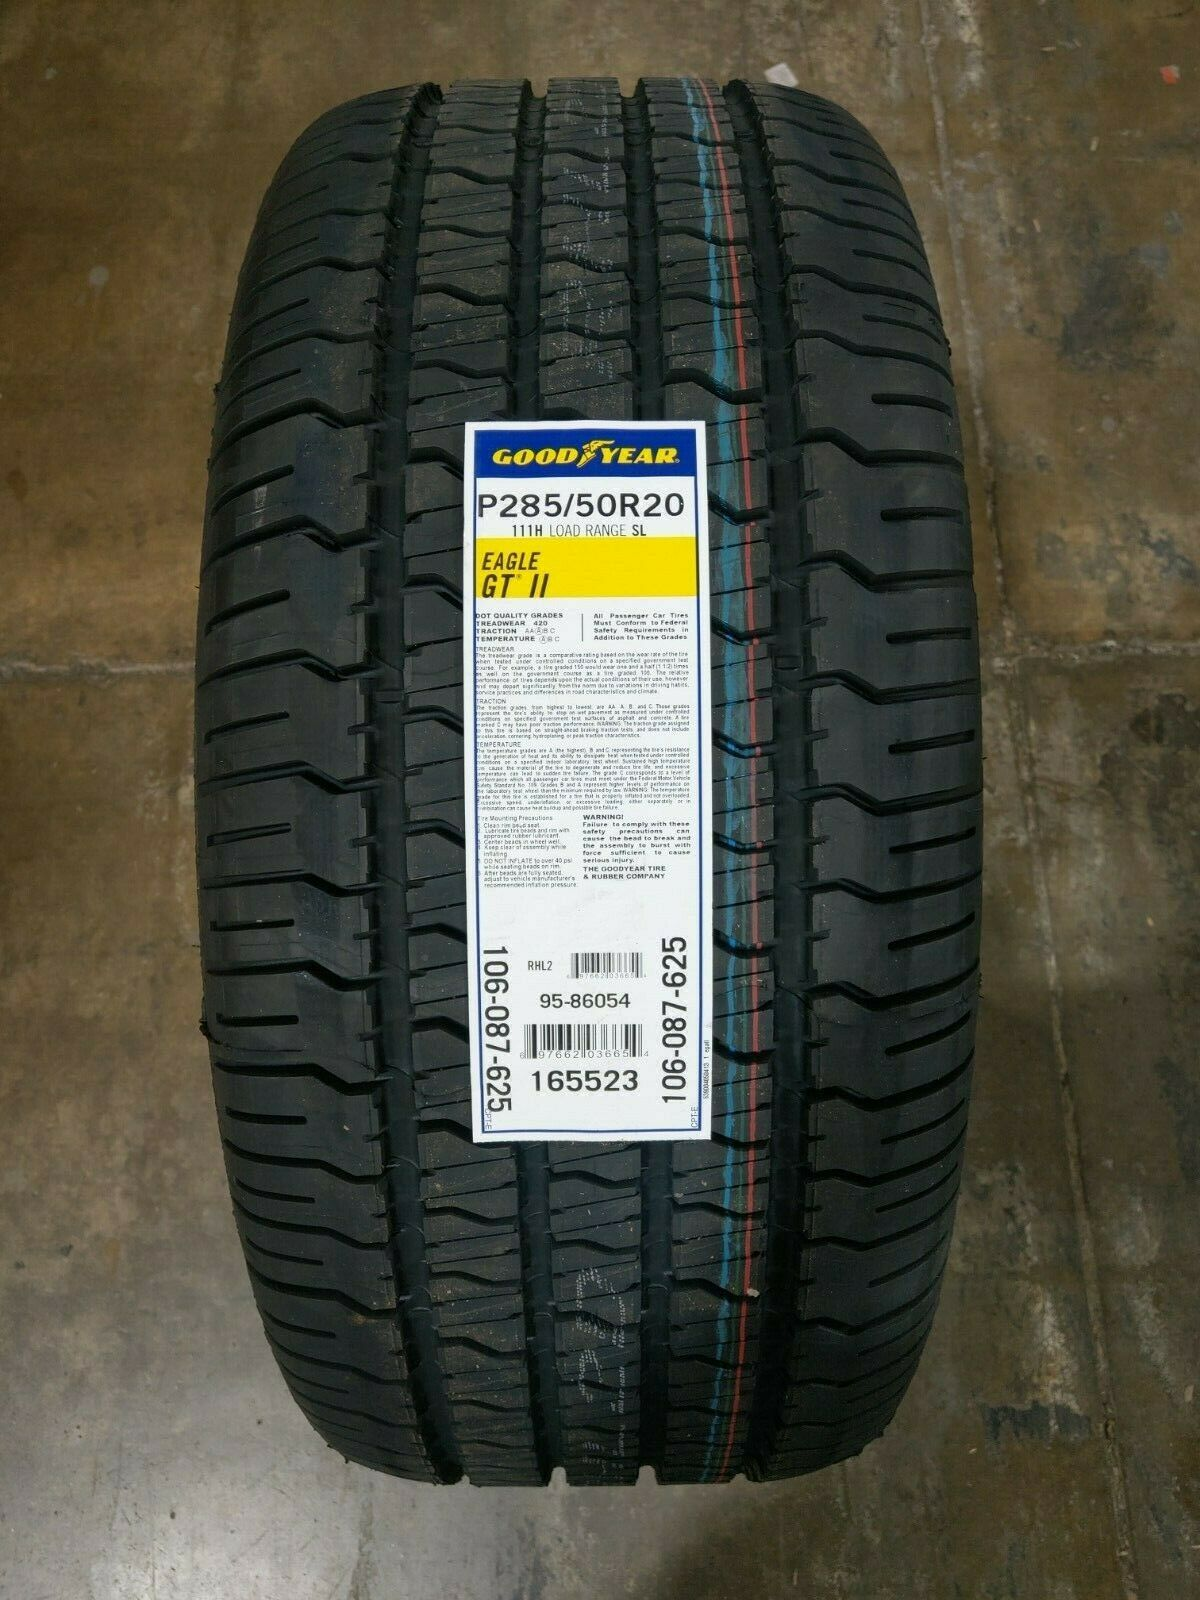 Good Year Eagle GT II 285/50R20